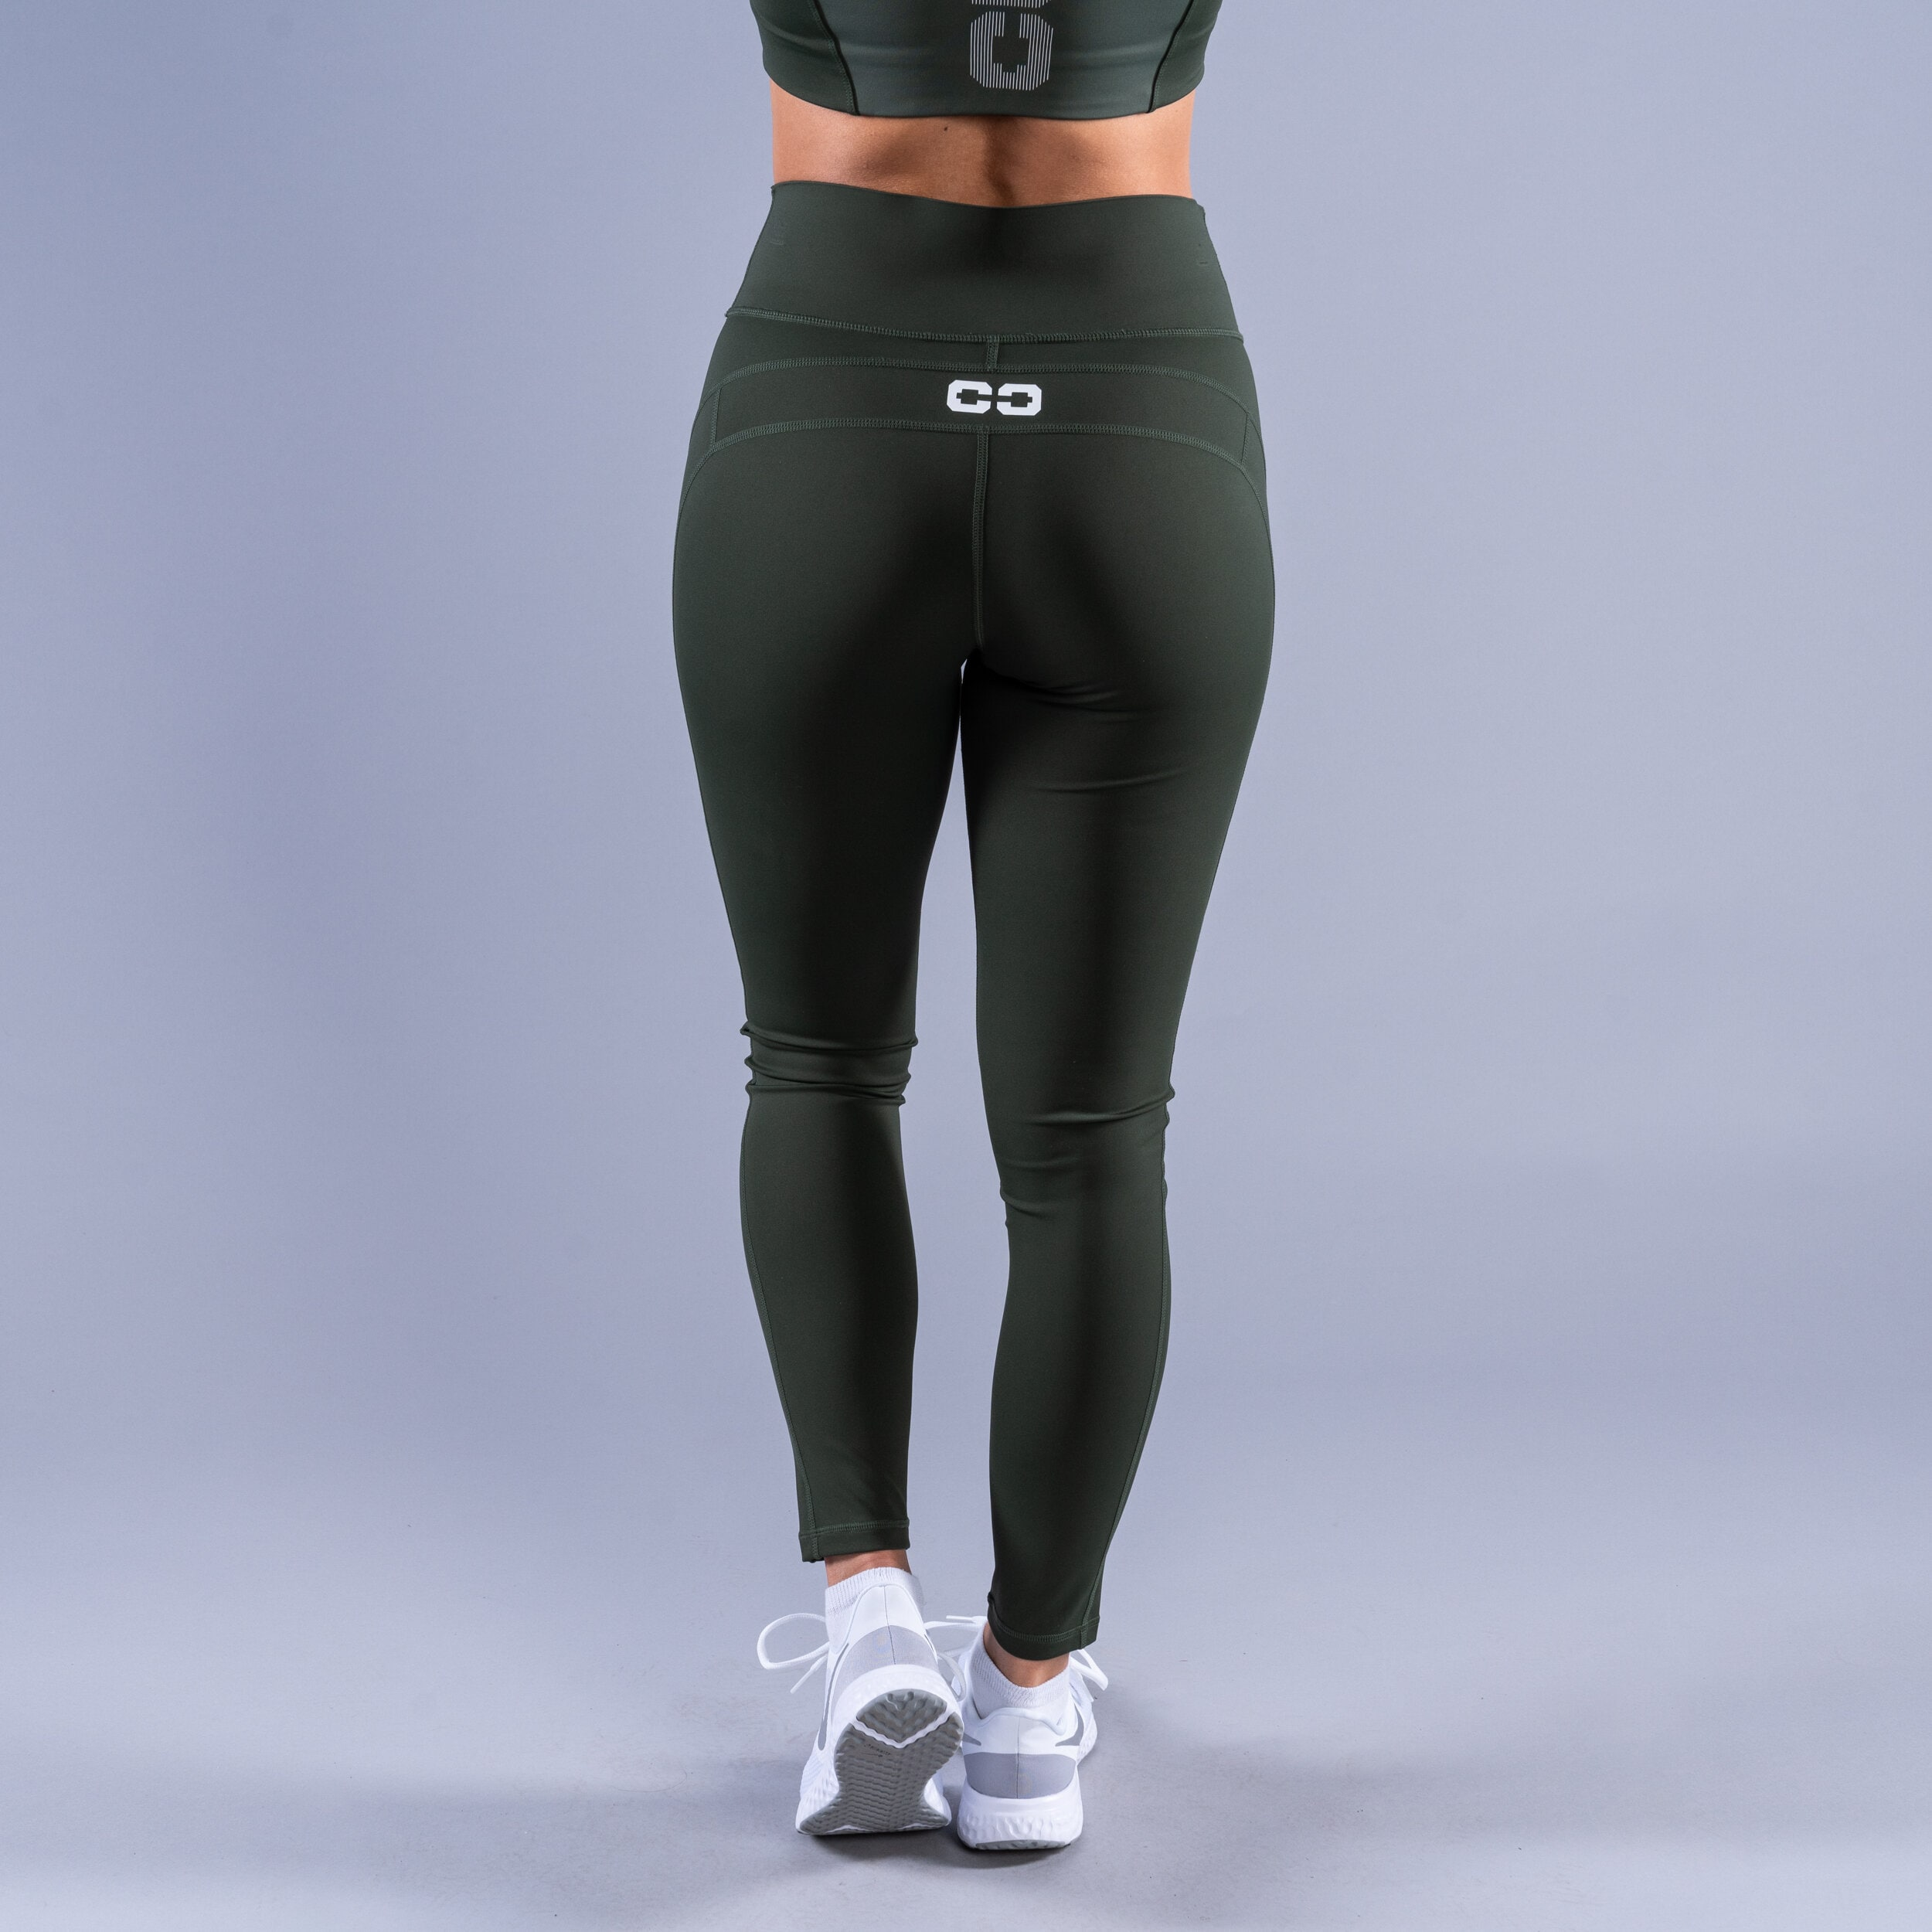 CLN Omni ws tights Dark green